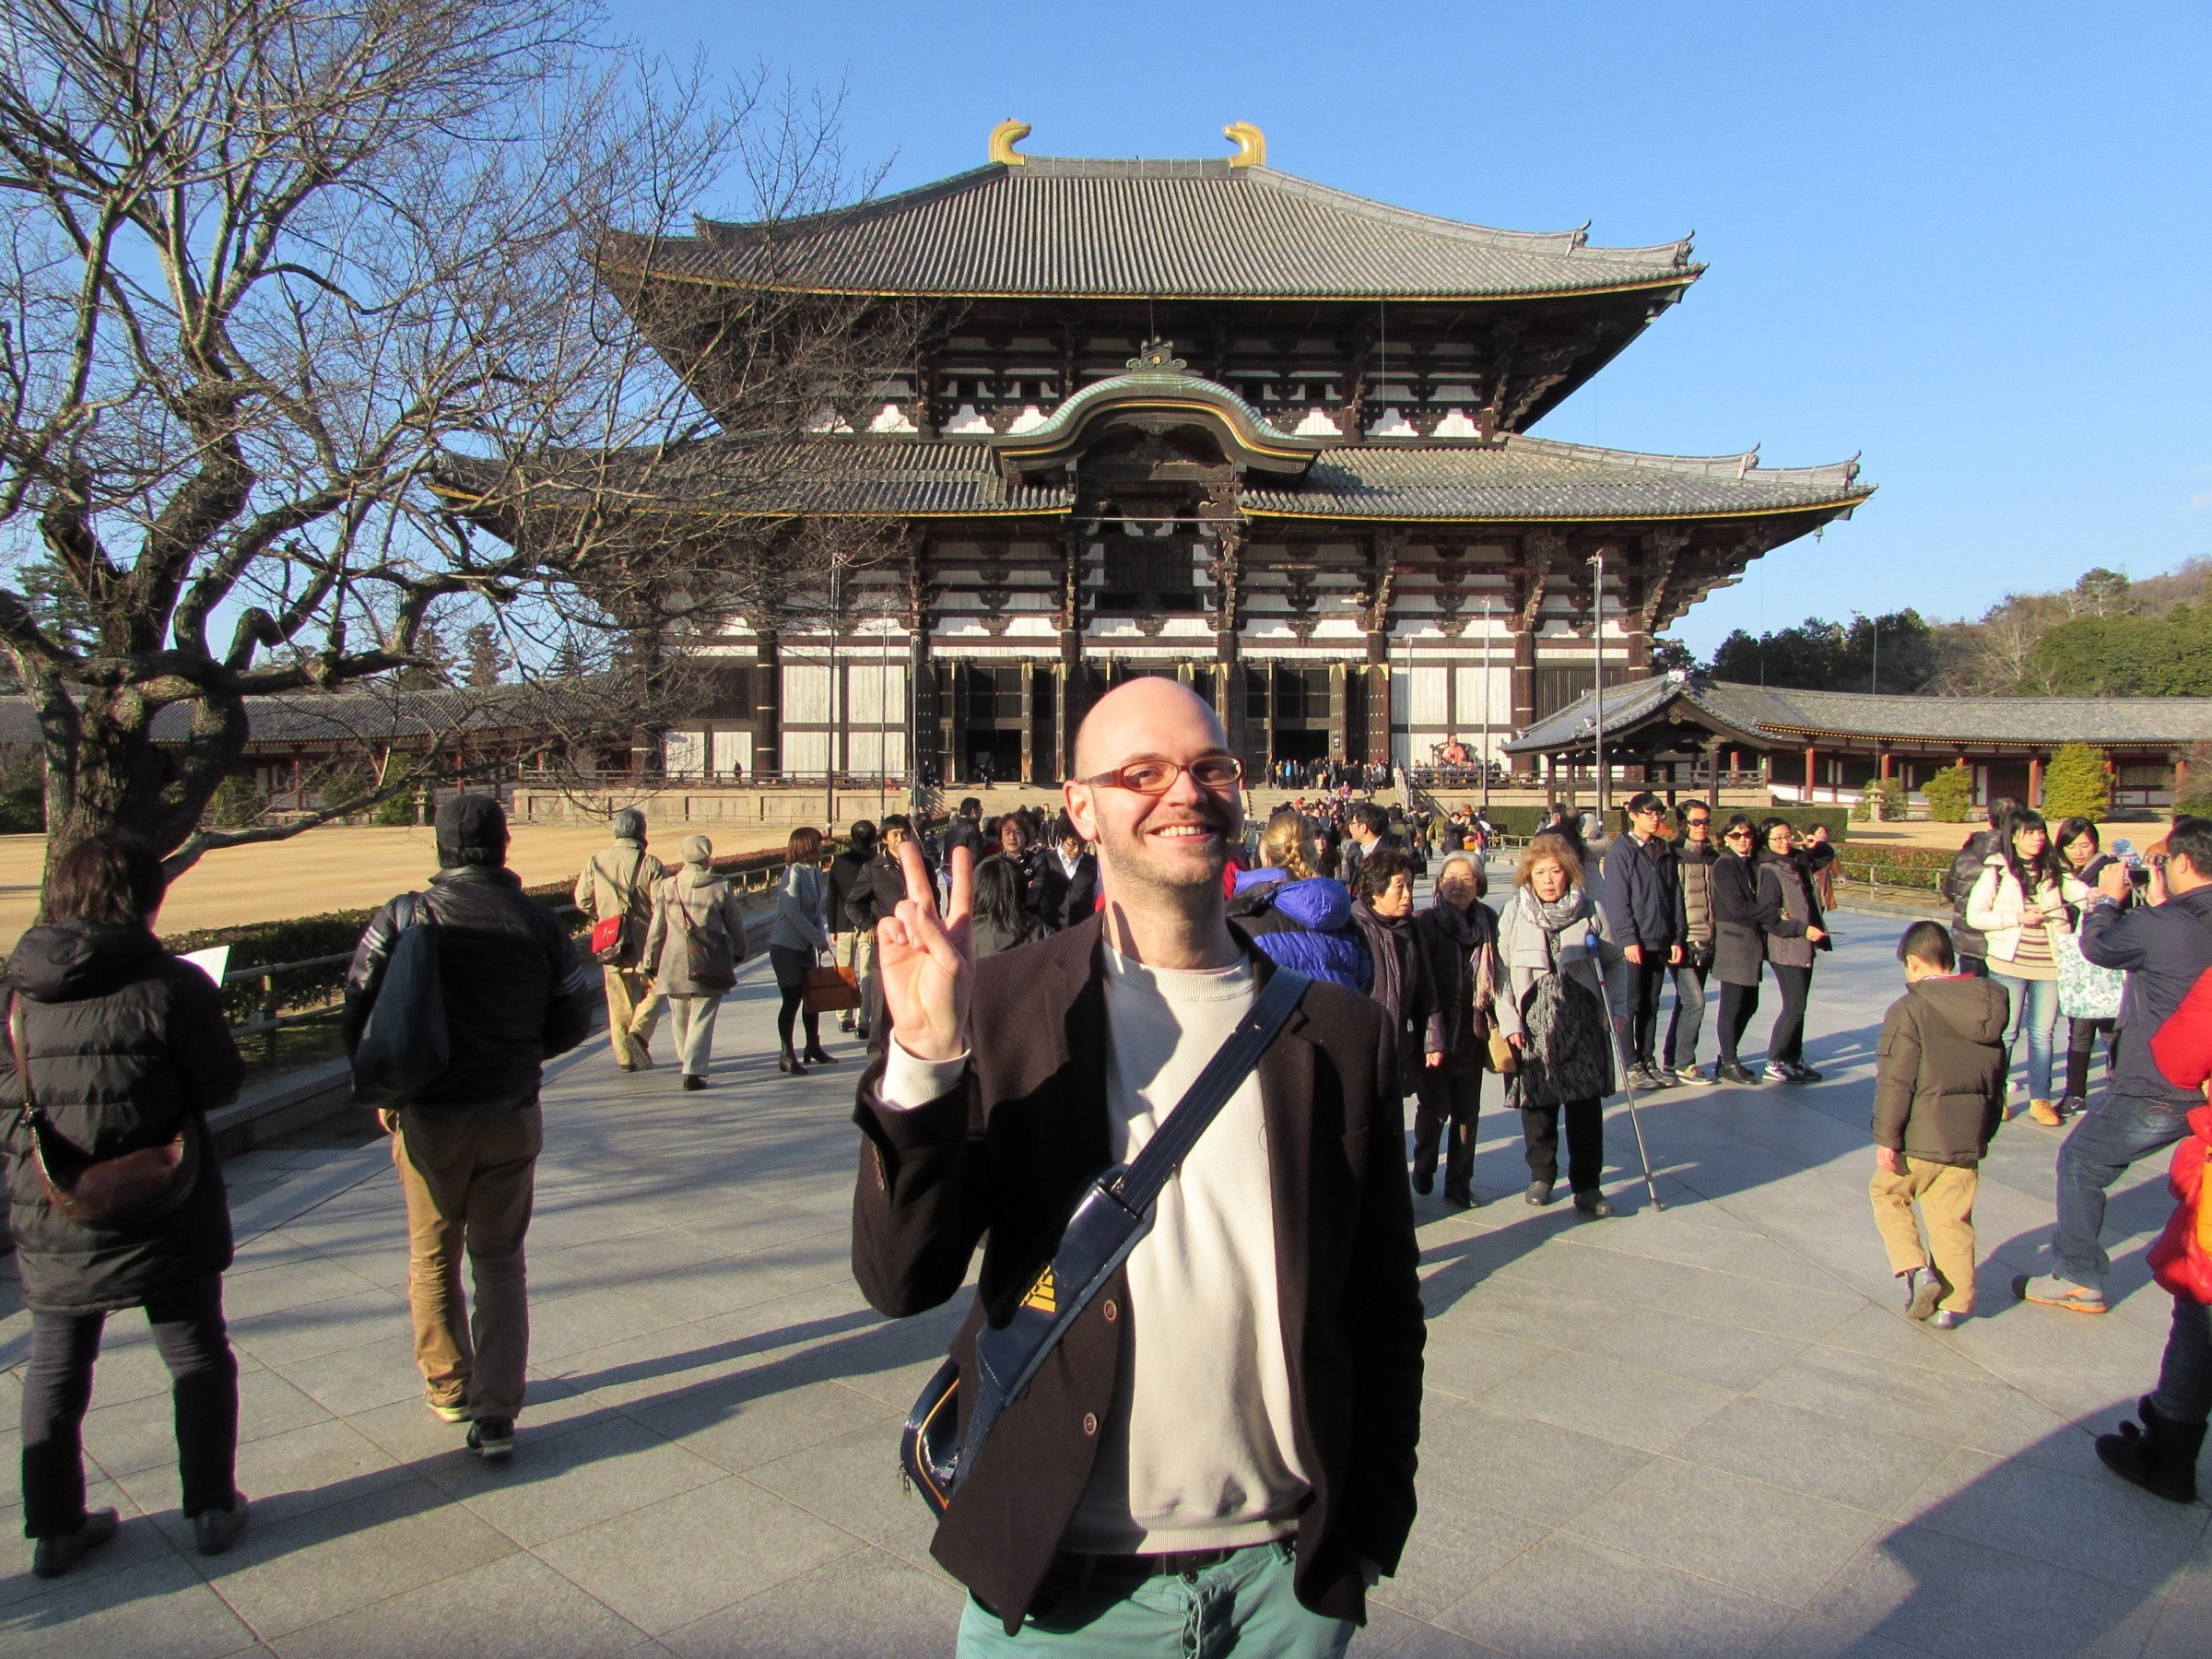 Todai-ji temple (the largest wooden structure in the world!) looked as beautiful as ever, even with my ugly mug blocking the view!